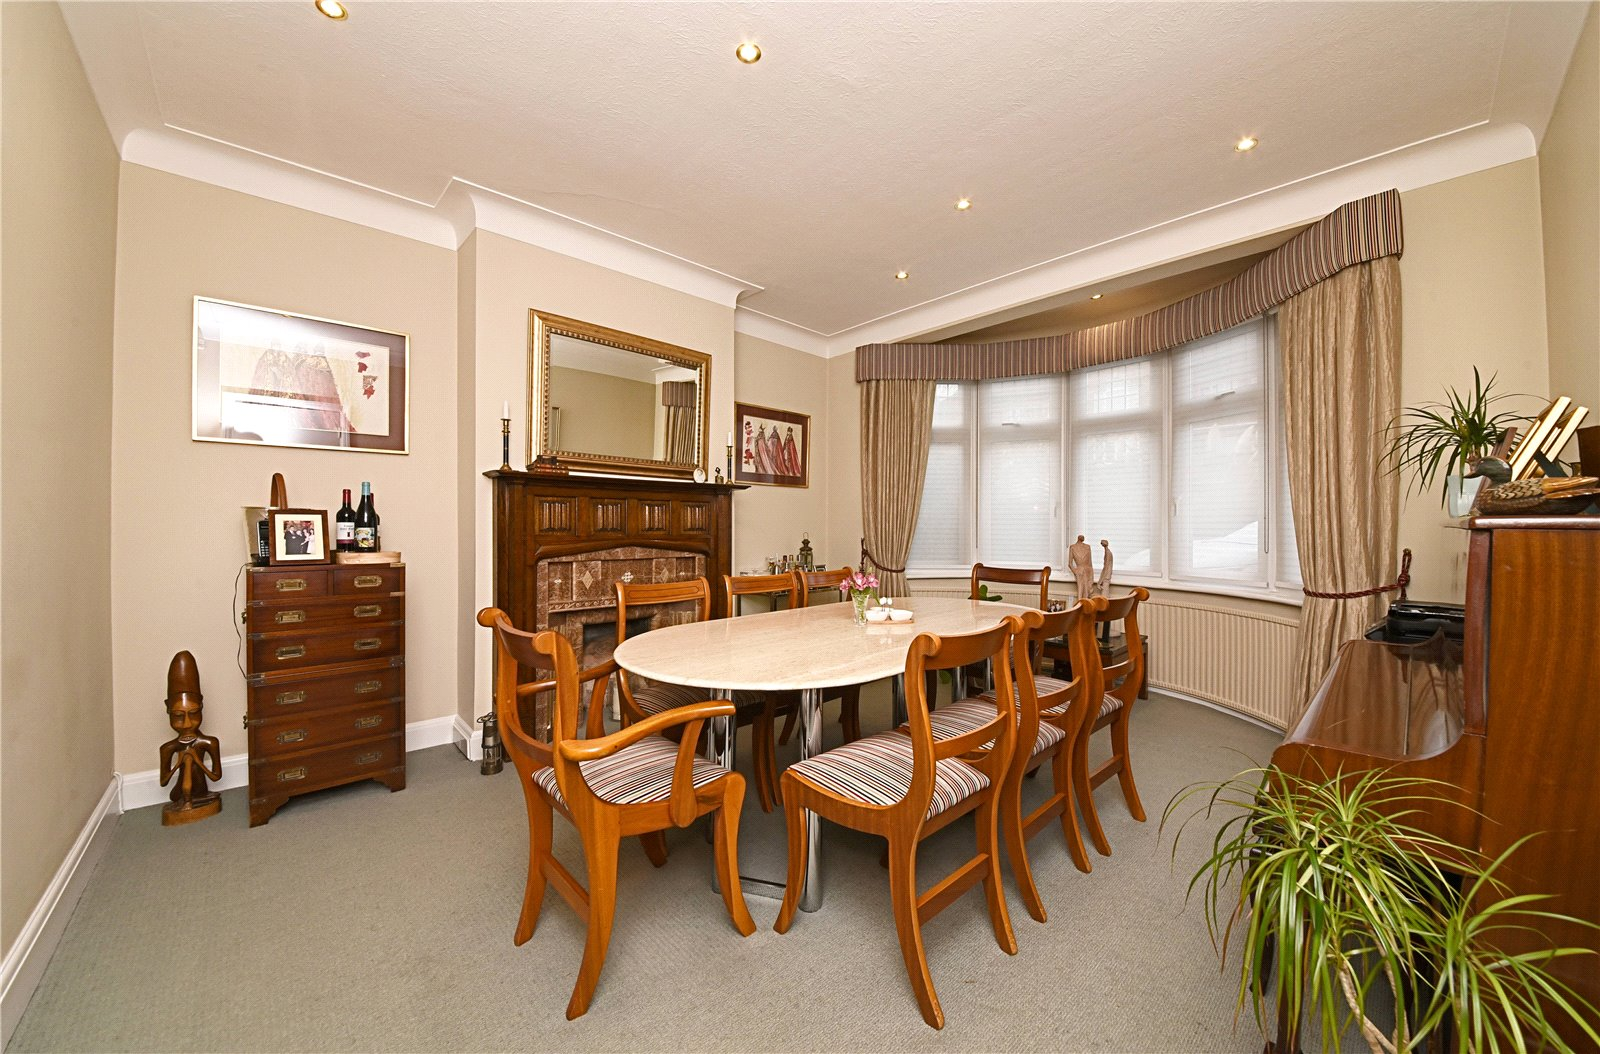 4 bed house for sale in Hendon, NW4 1LJ 4